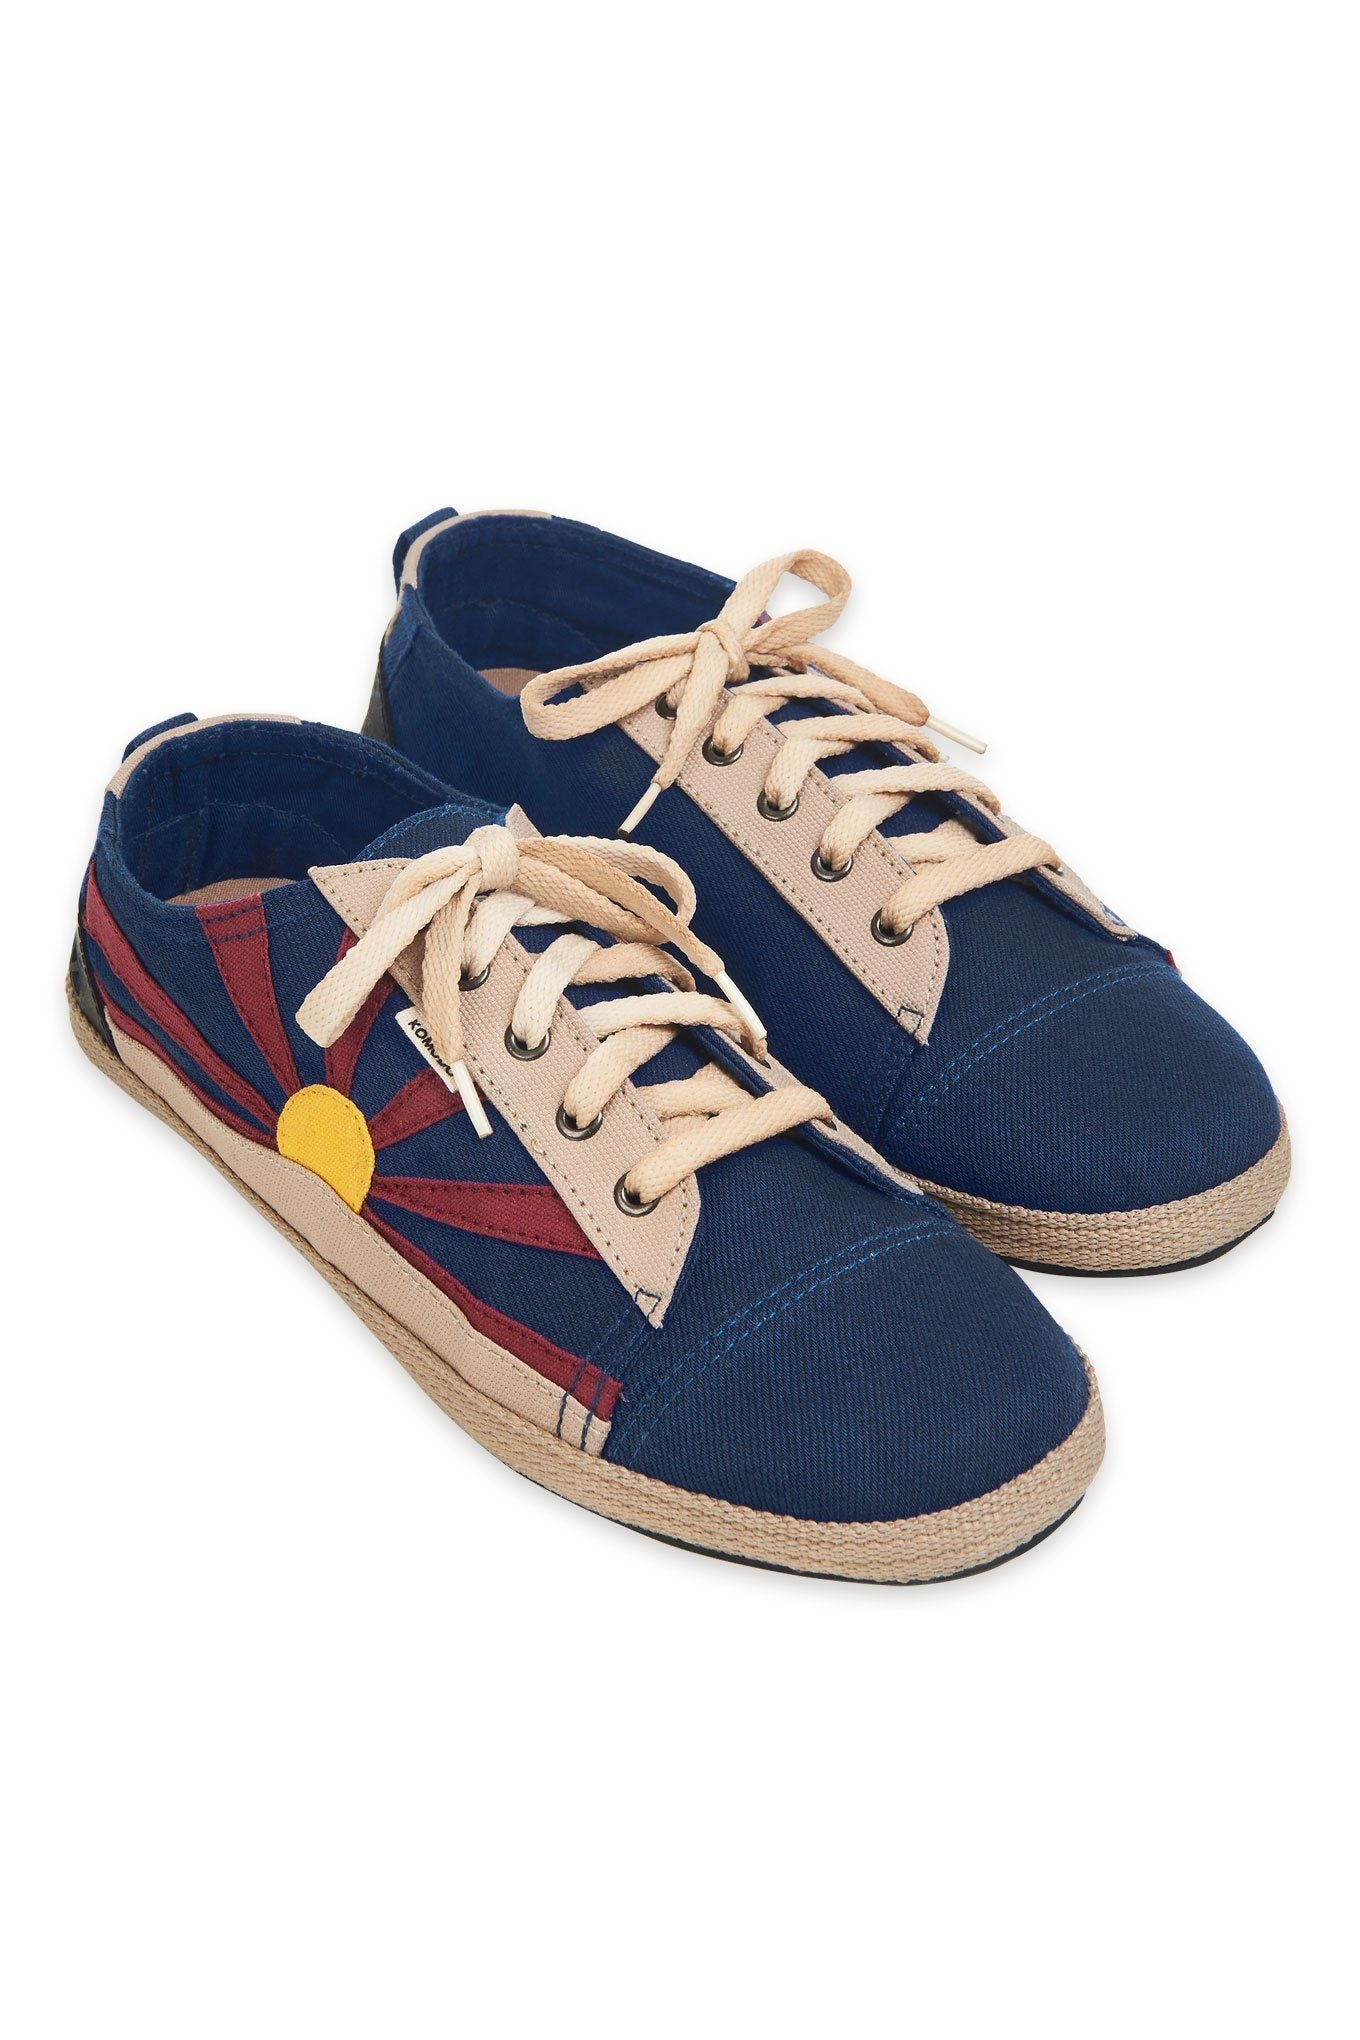 Shoes - FREE TIBET Womens Shoe Navy